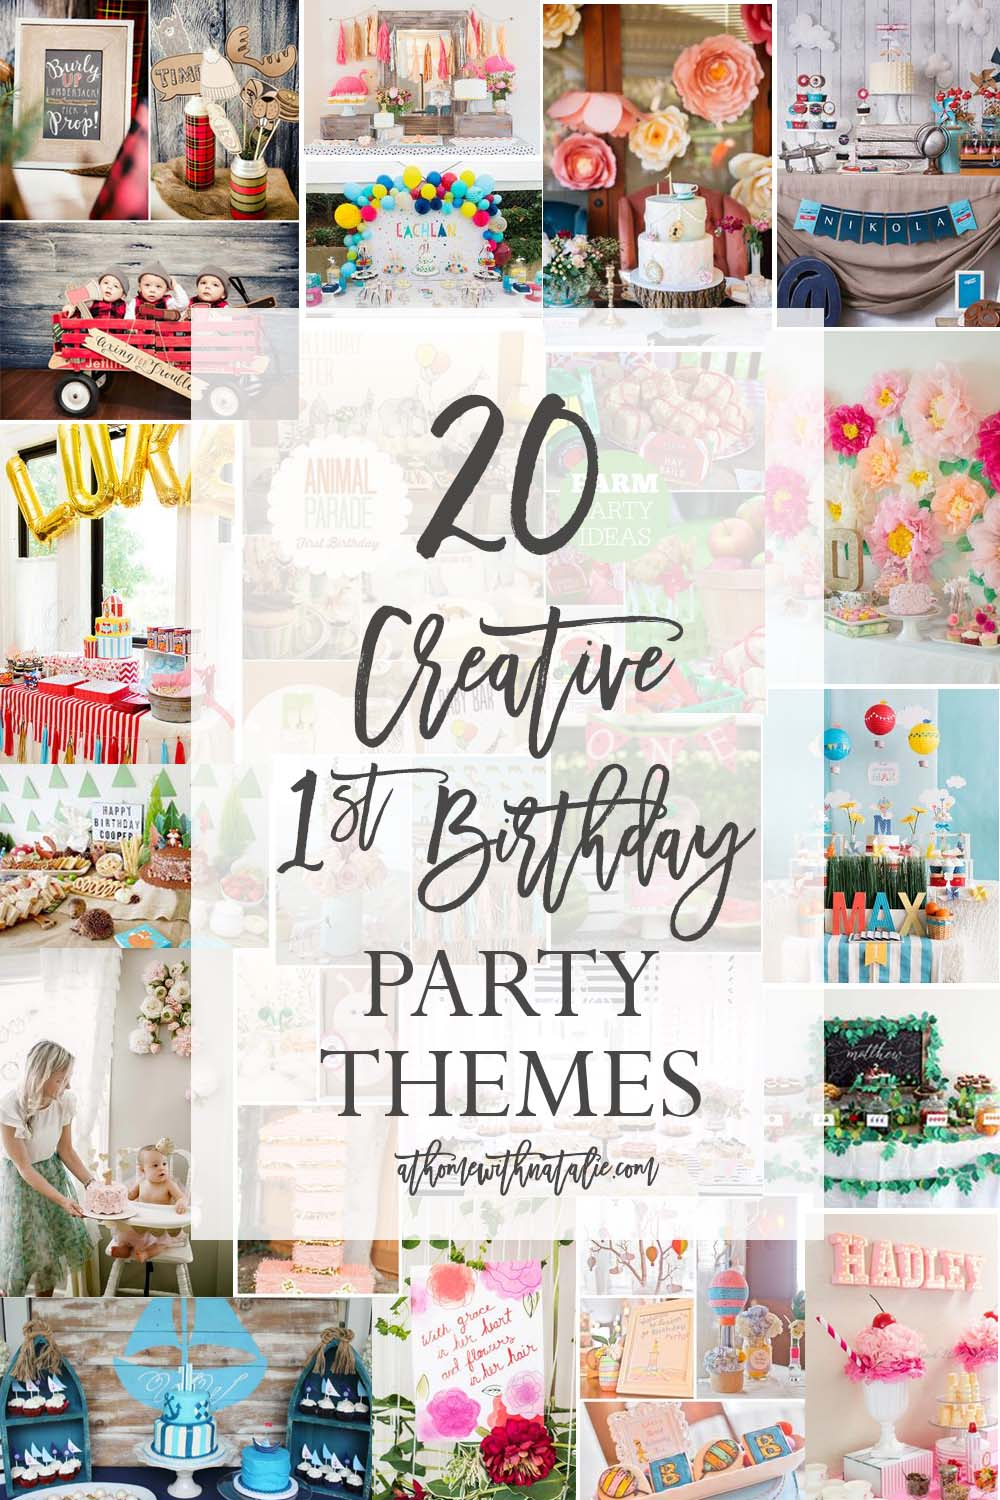 first birthday party themes ; First-Birthday-Party-Themes-athomewithnatalie1